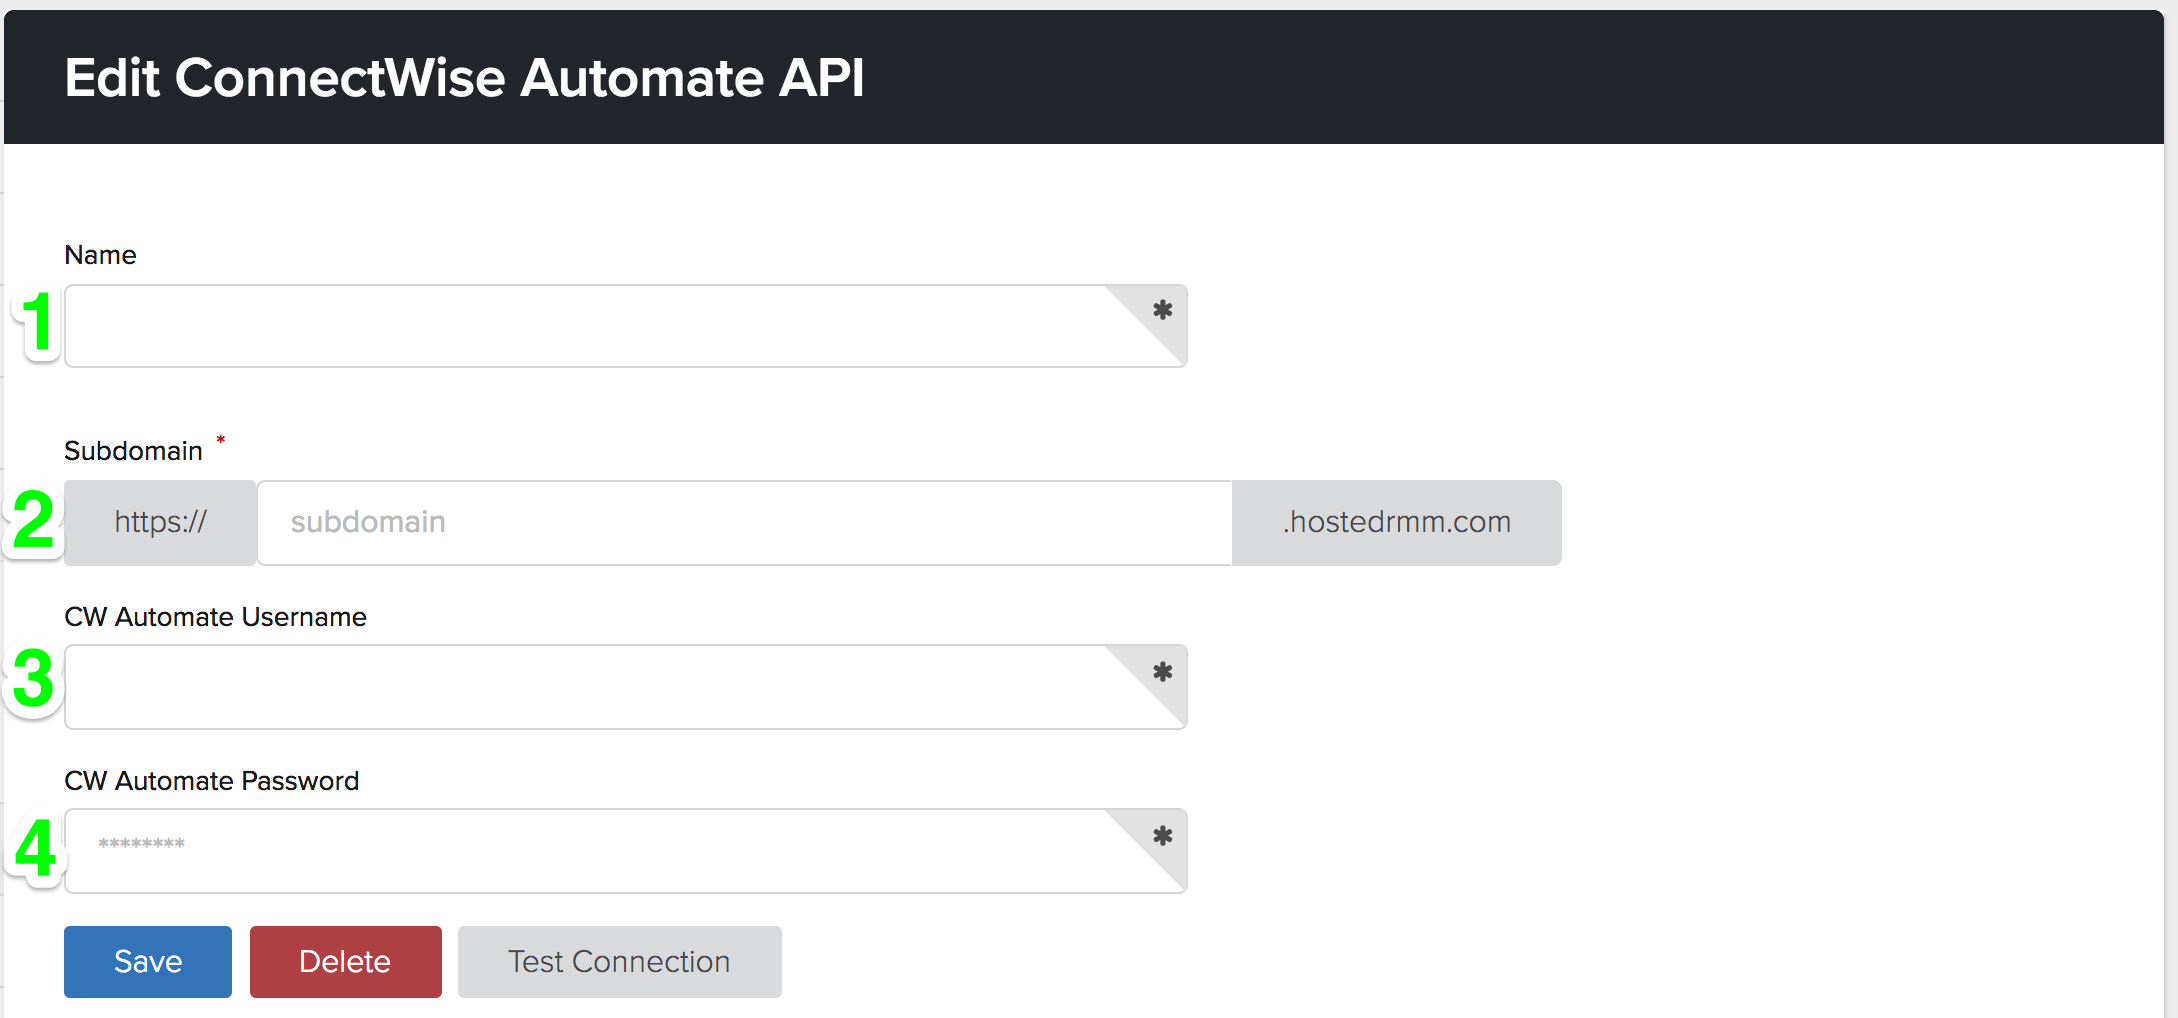 Connecting to ConnectWise Automate (LabTech) Cloud